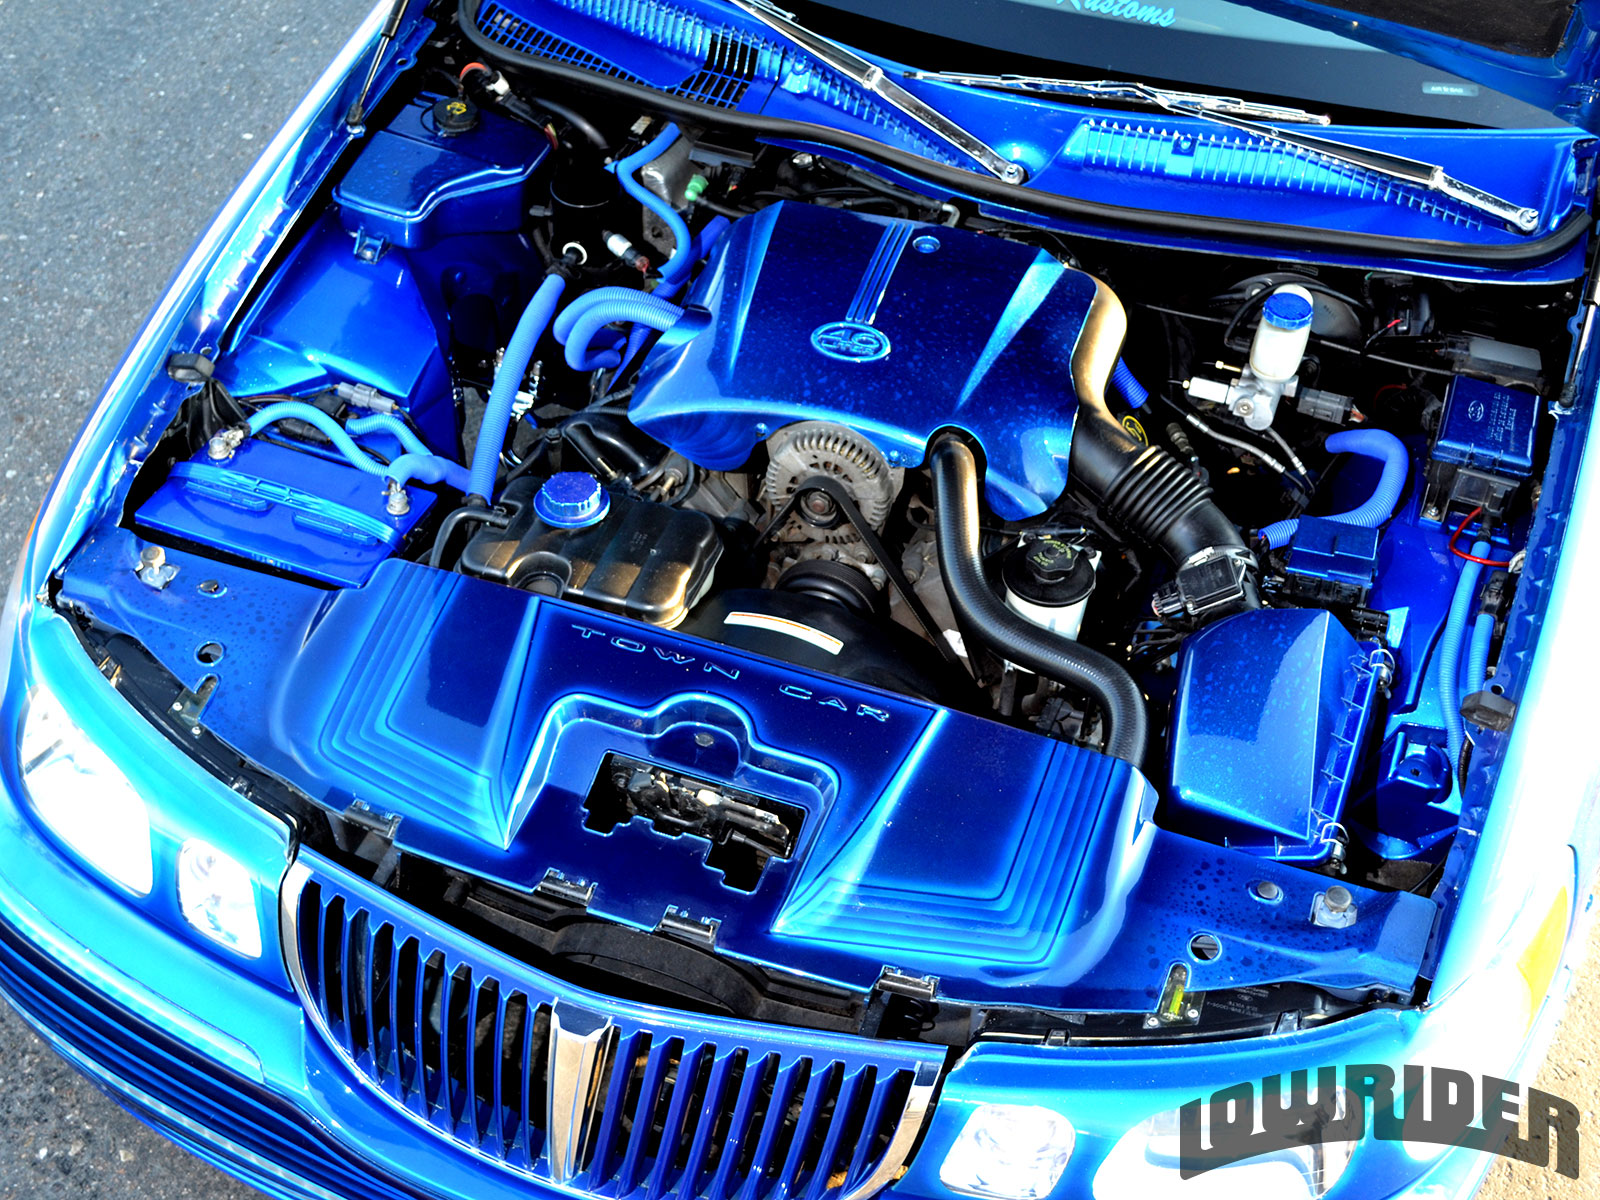 1998 Lincoln Town Car Engine Bay Lowrider